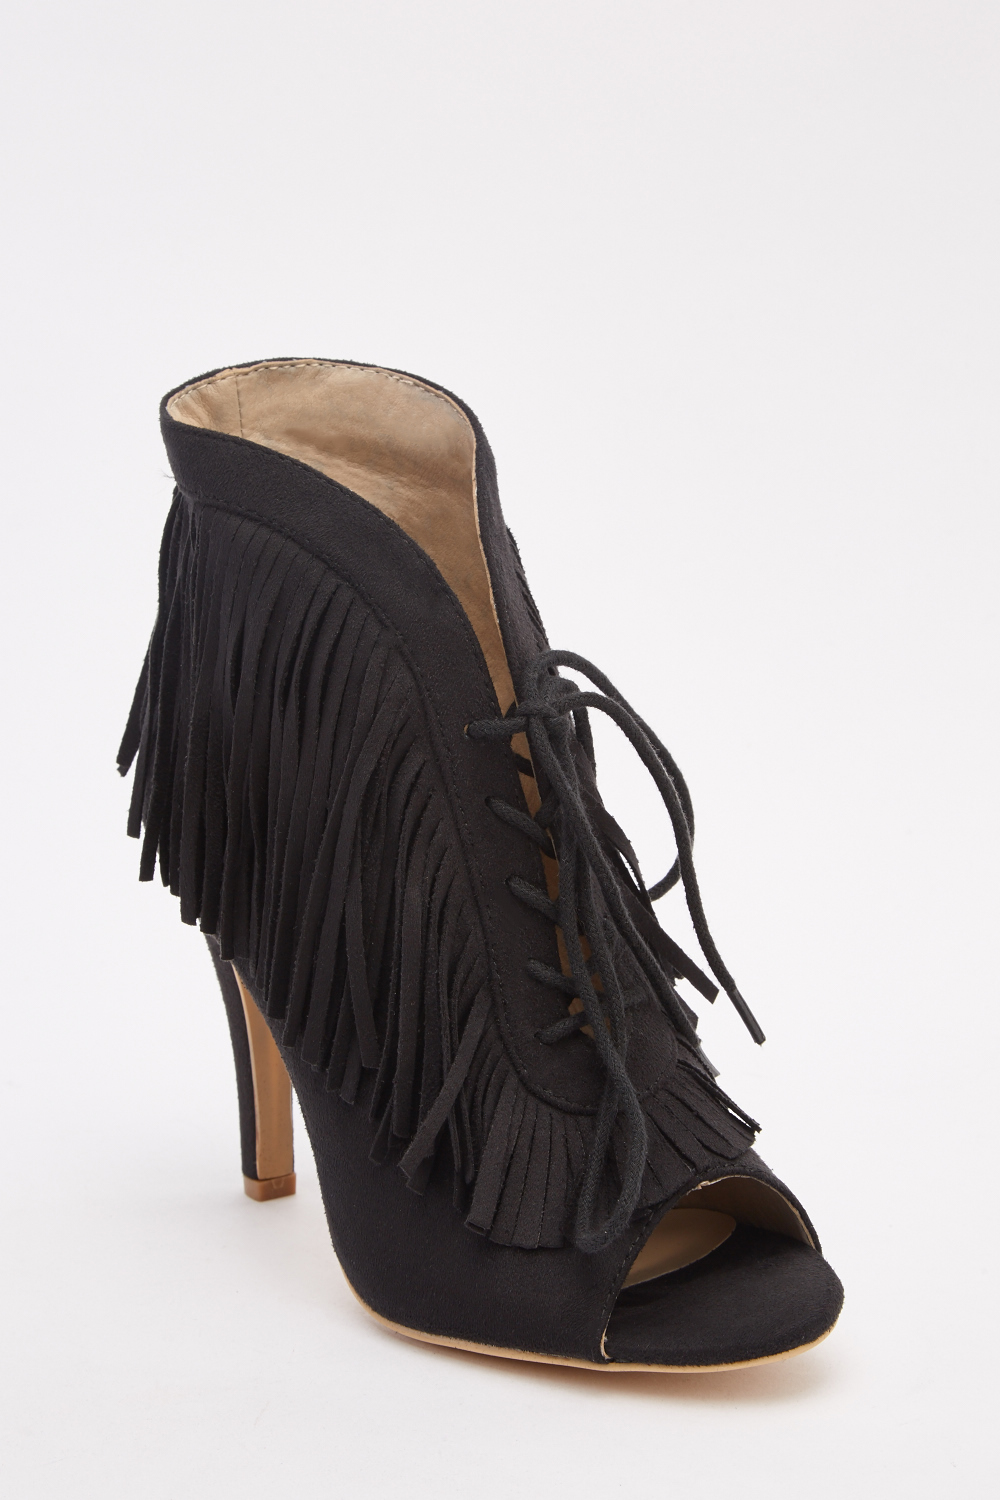 d8adbb31eae7 Fringe Lace Up Peep Toe Booties - Just £5